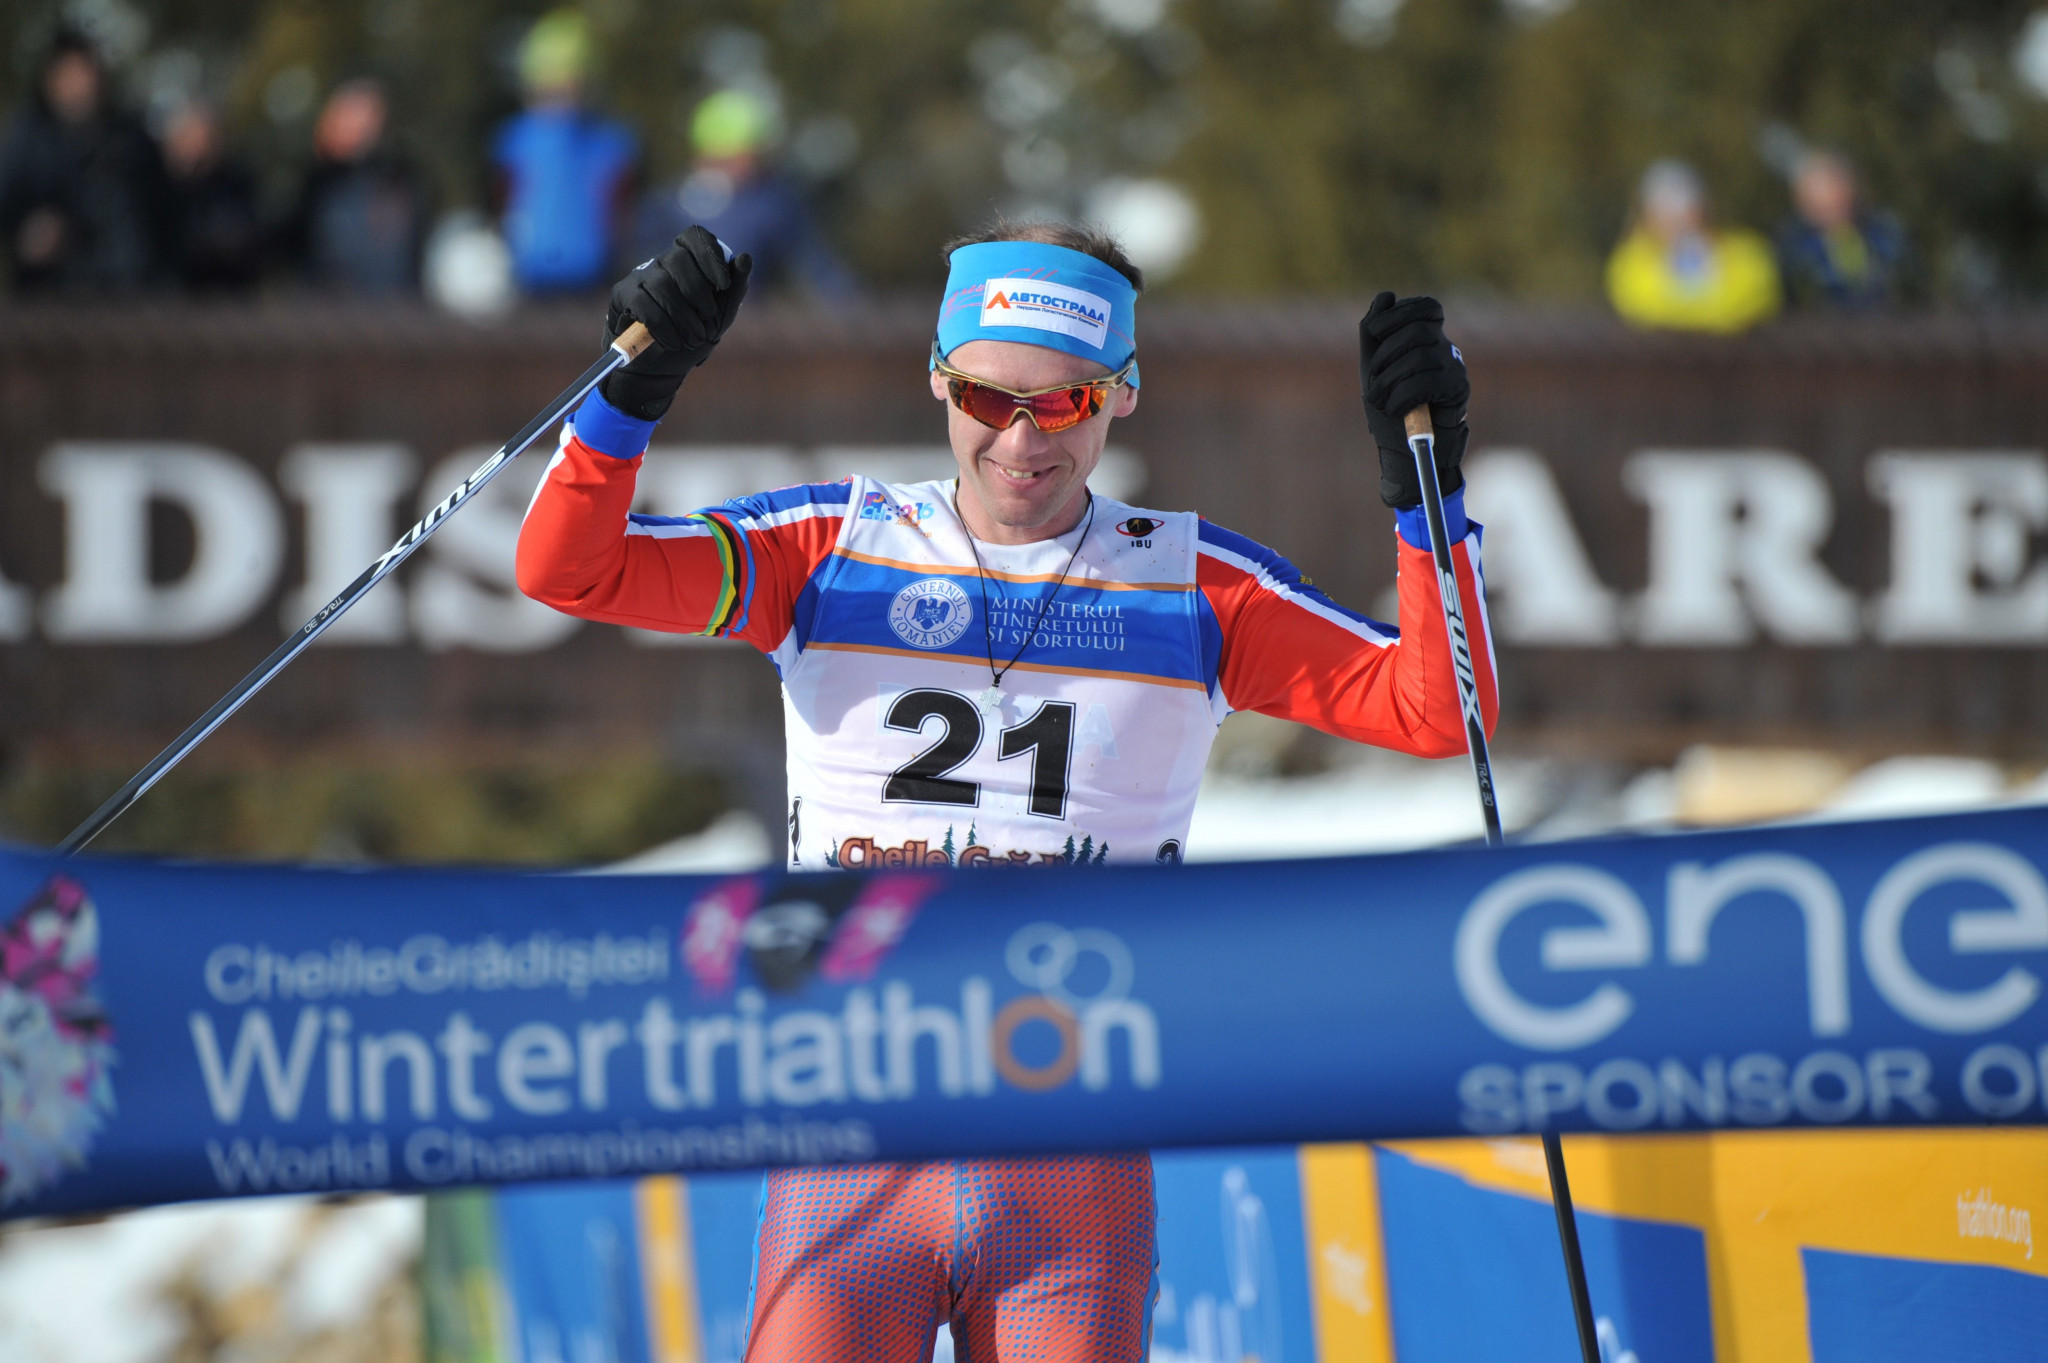 Russia's Pavel Andreev won the Winter Triathlon World Championships for a sixth time ©ITU